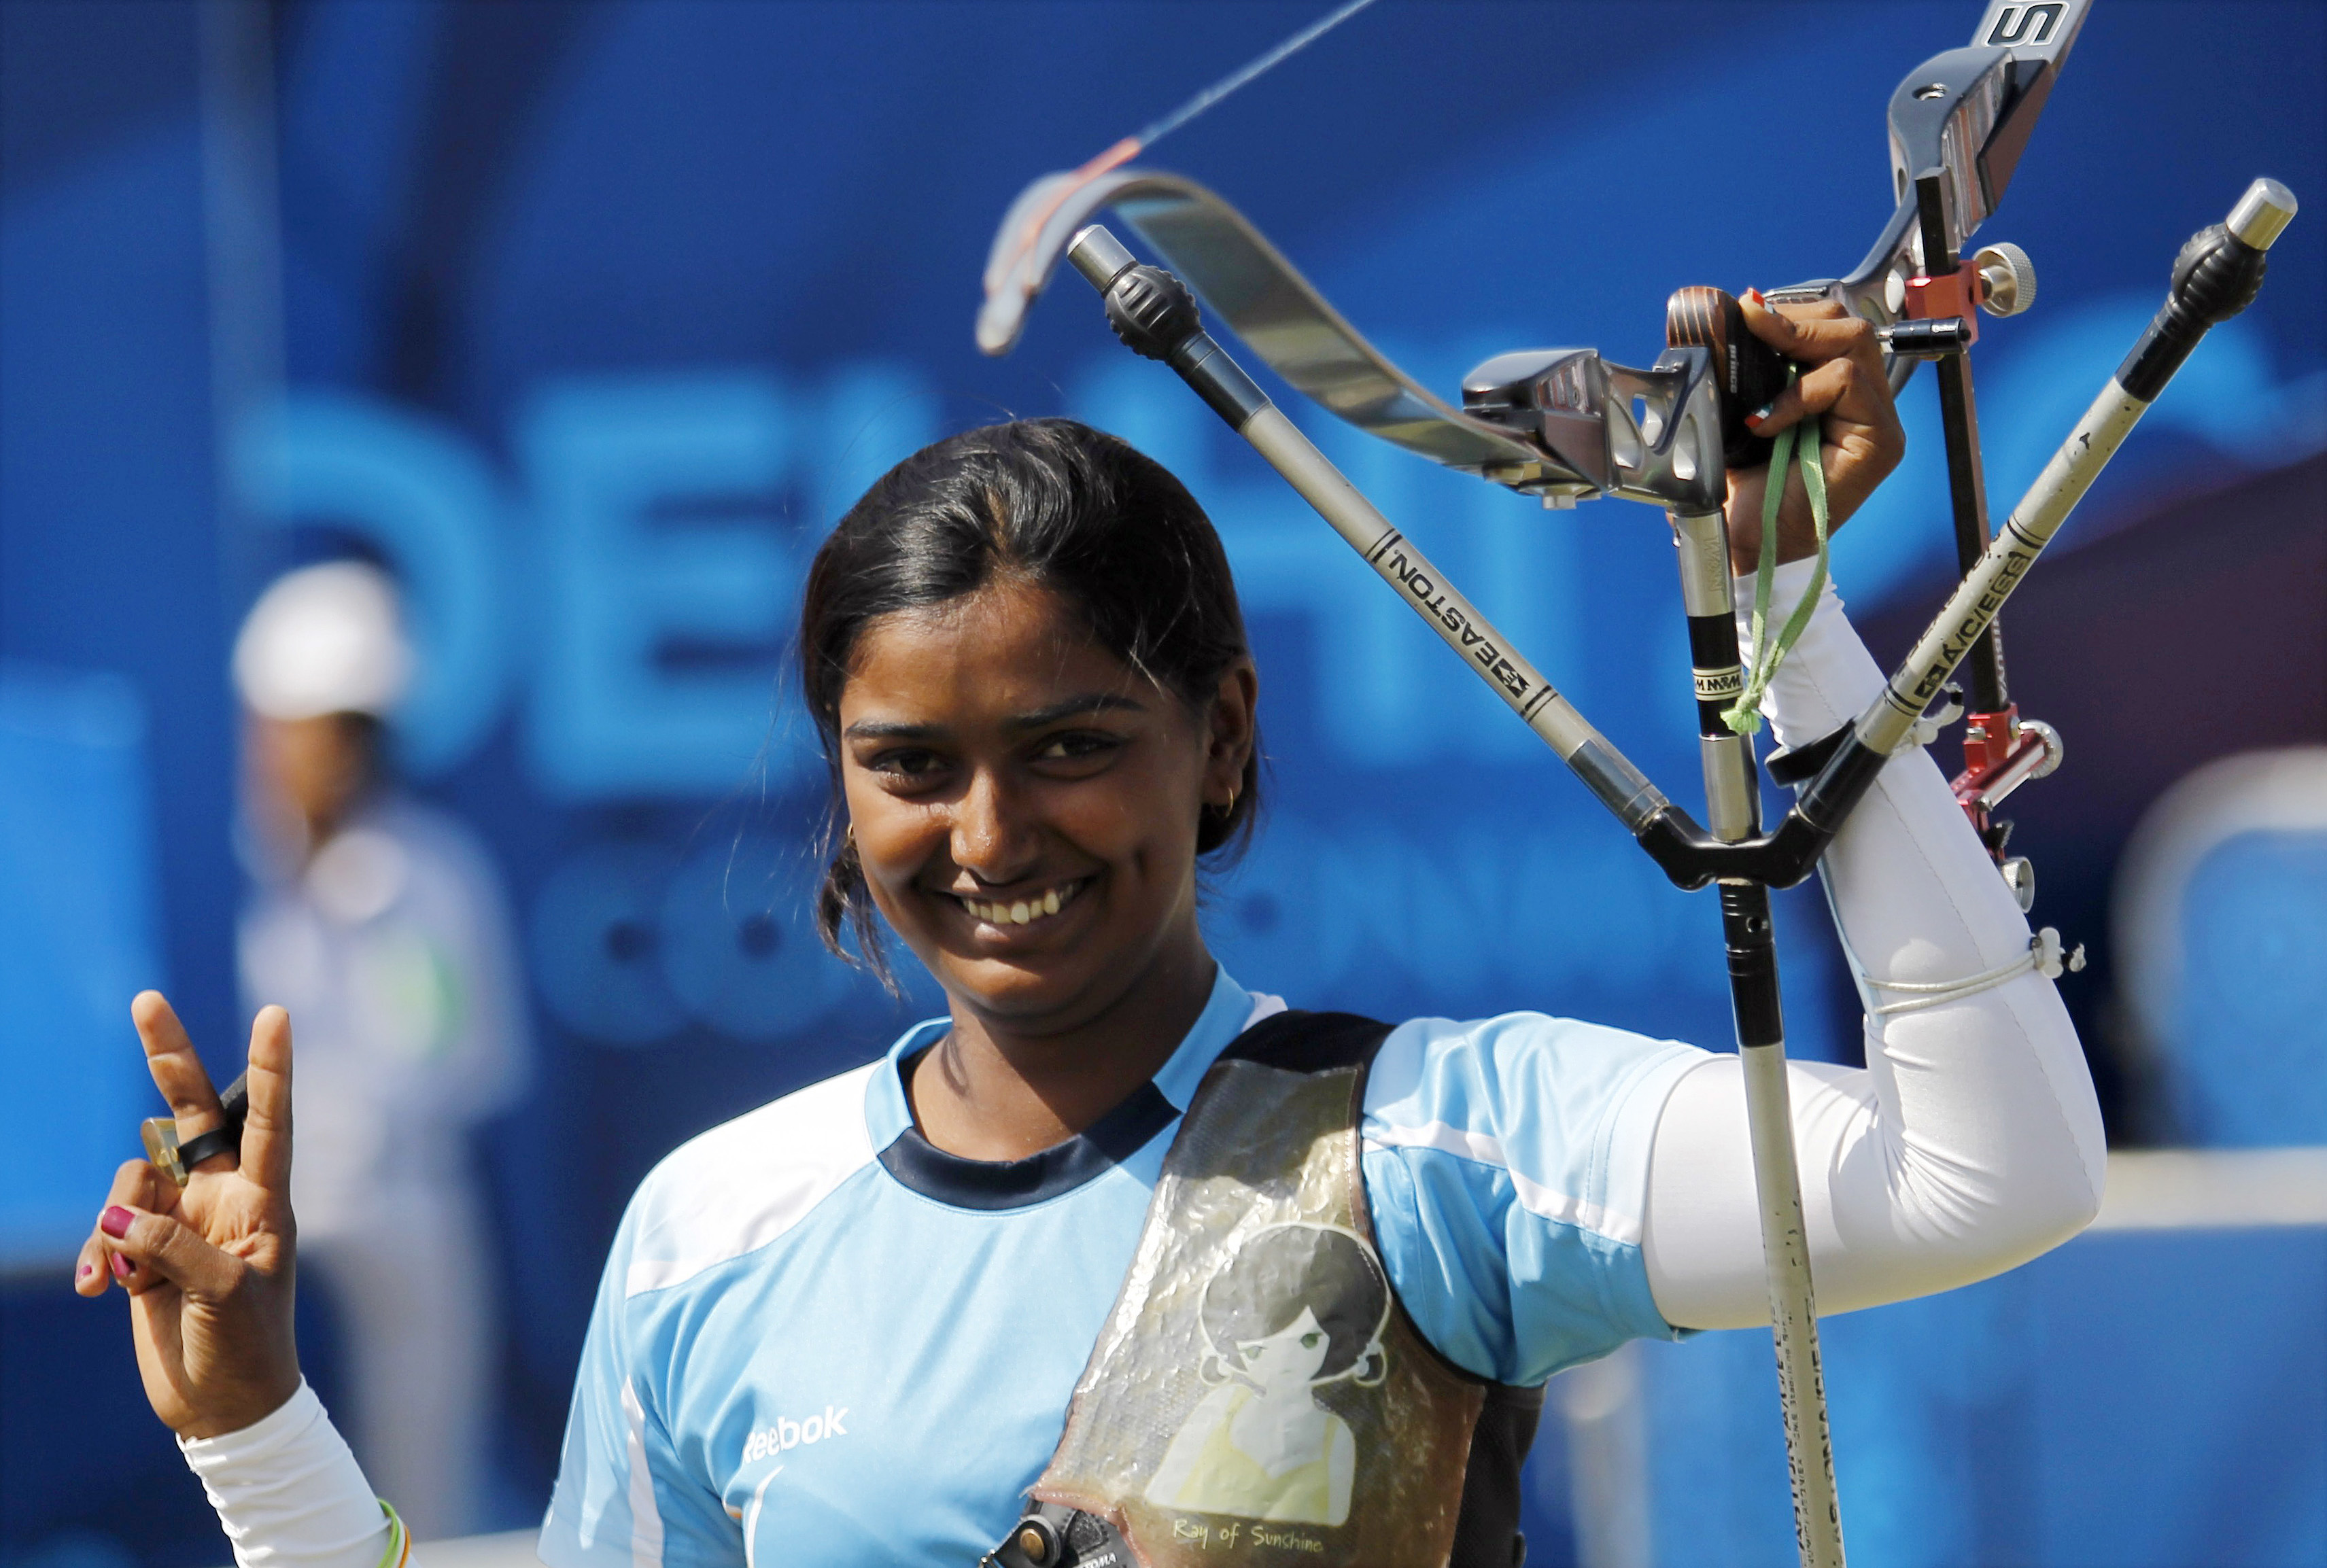 India's Deepika Kumari poses after winning the gold medal in the women's recurve archery finals at the Commonwealth Games in New Delhi